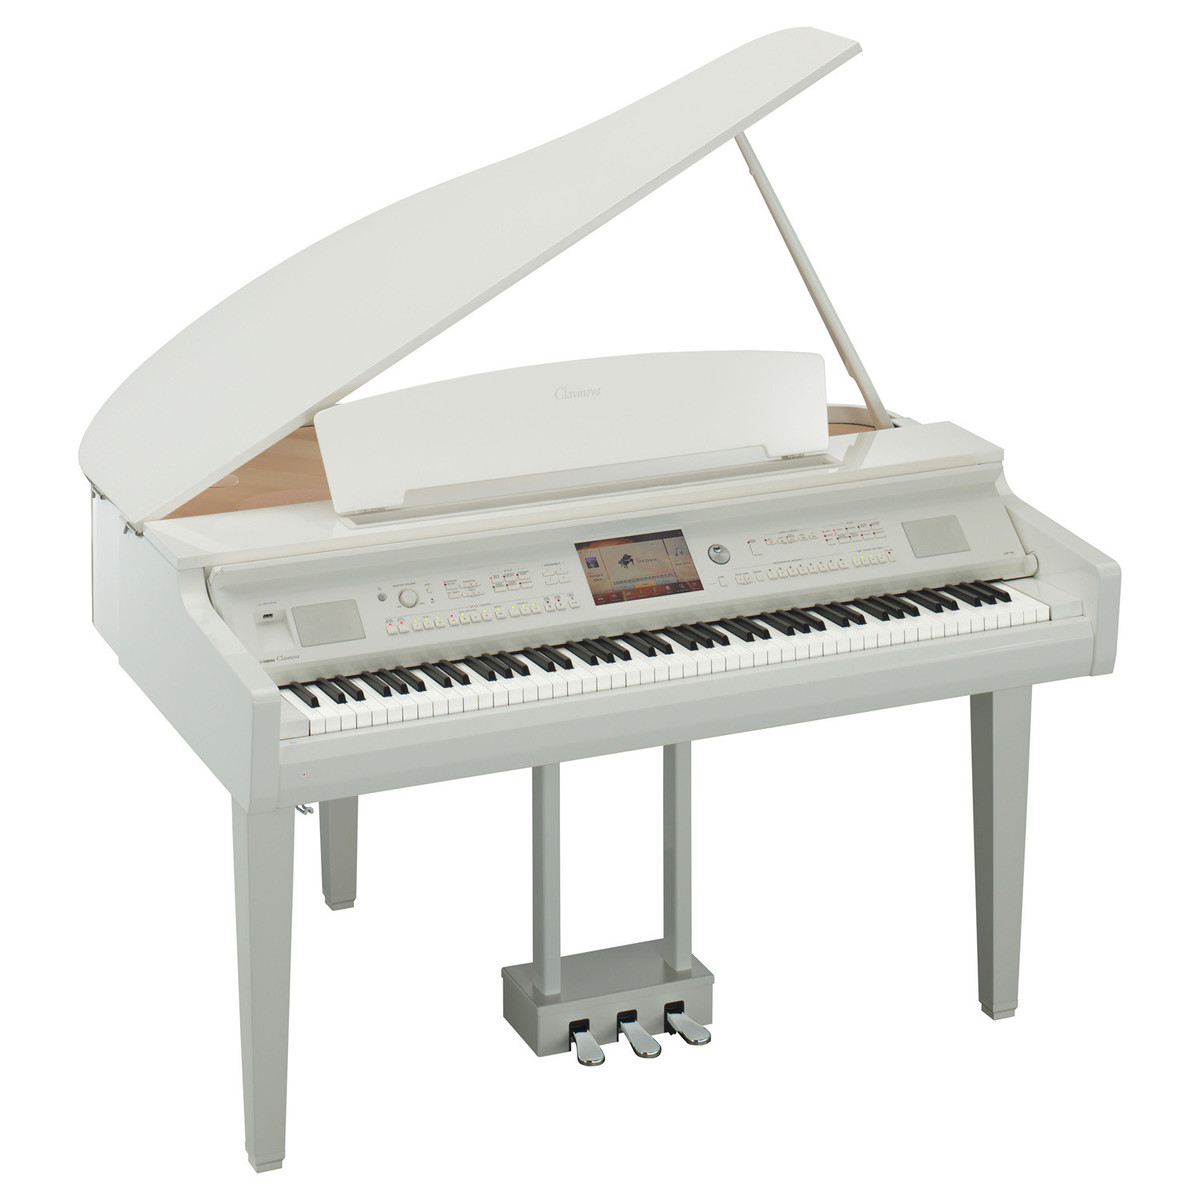 yamaha cvp 709 clavinova digital grand piano polished white at gear4music. Black Bedroom Furniture Sets. Home Design Ideas